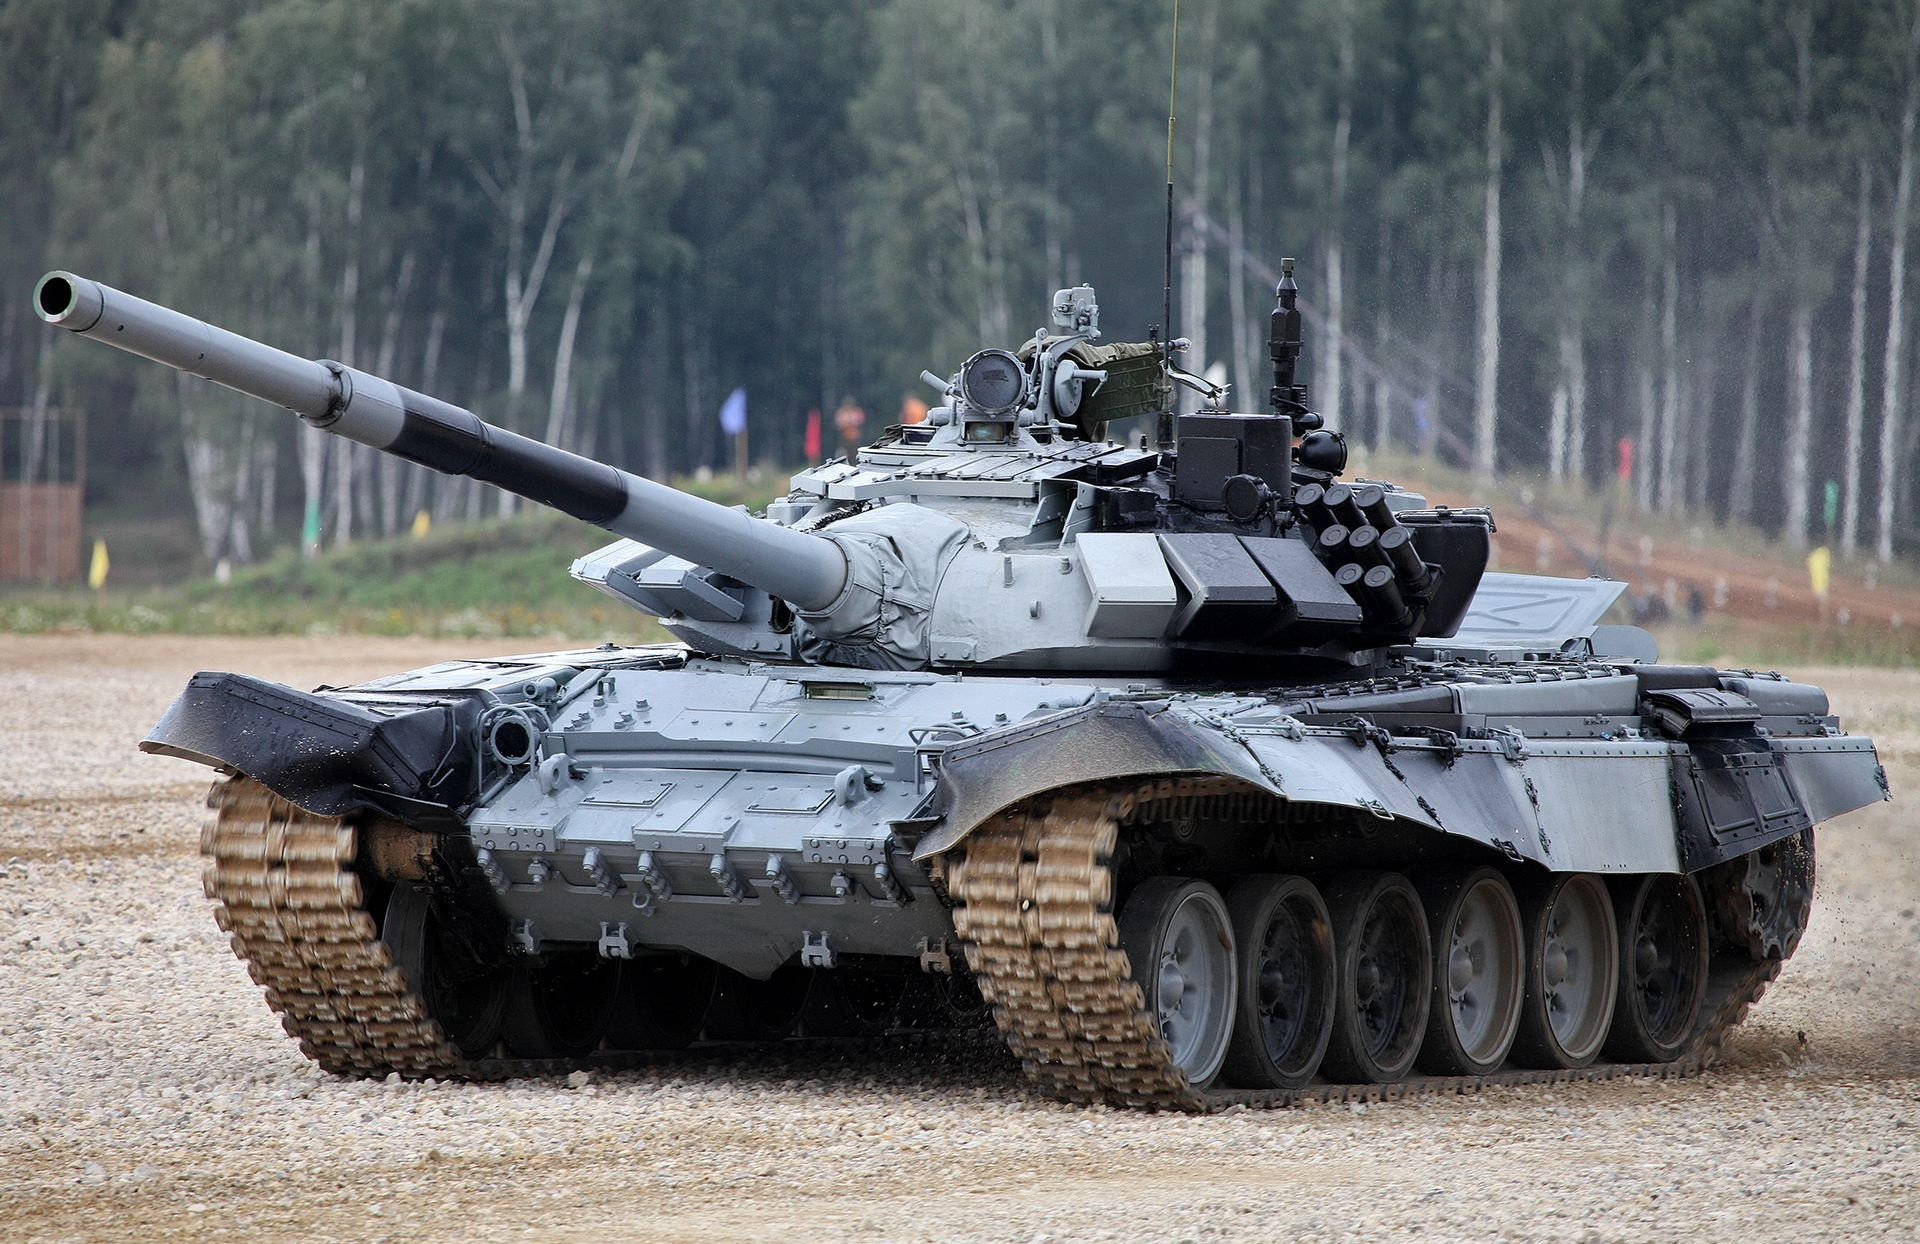 Russia will have 6 000 more tanks in its army the national interest blog - Army tank pictures ...